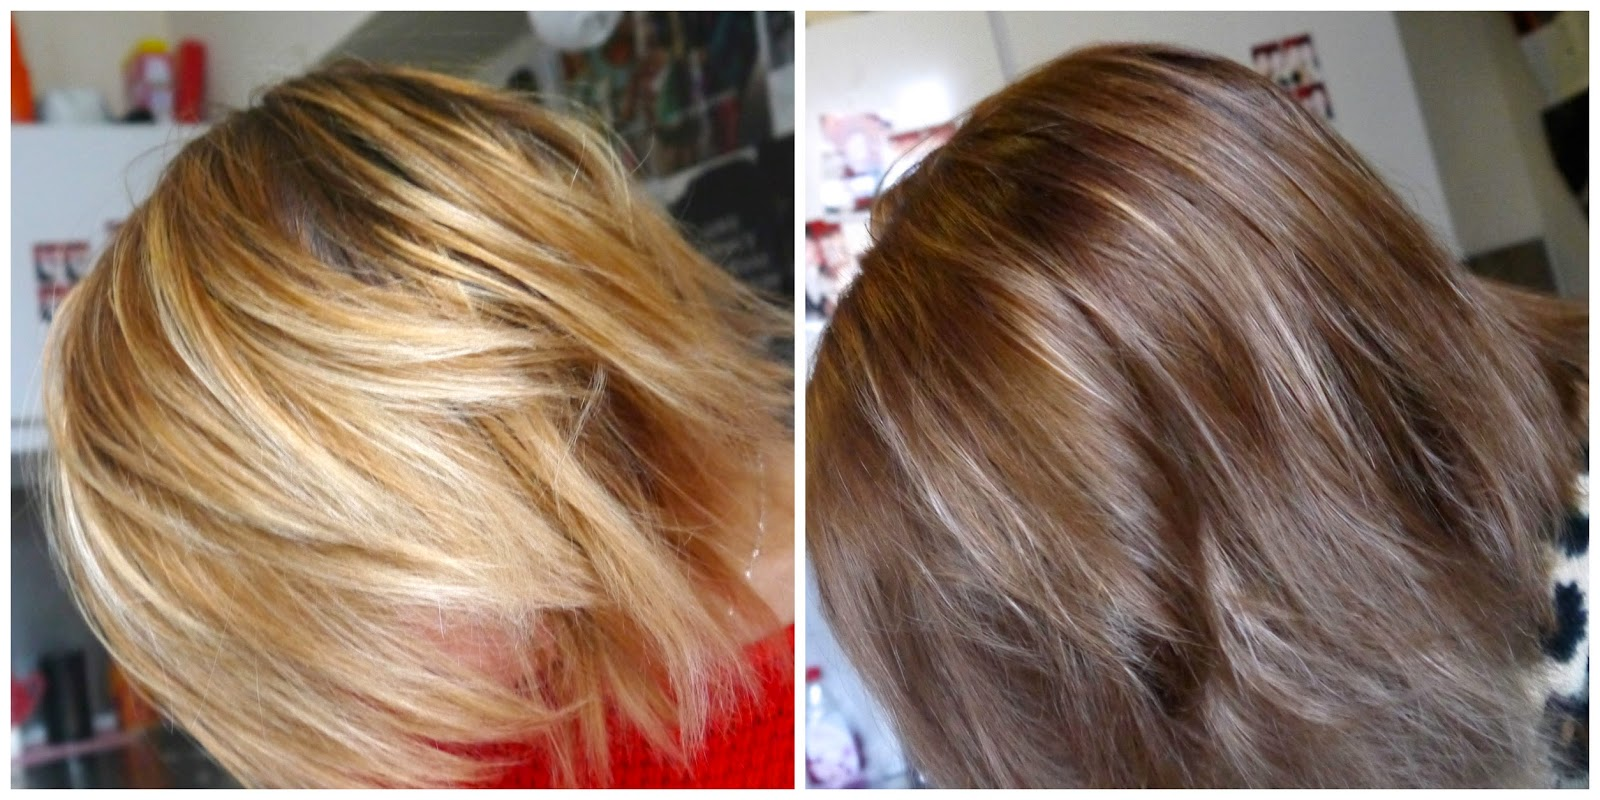 Loreal Prodigy Hair Dye In Camel Good Golly Miss Hollie Uk